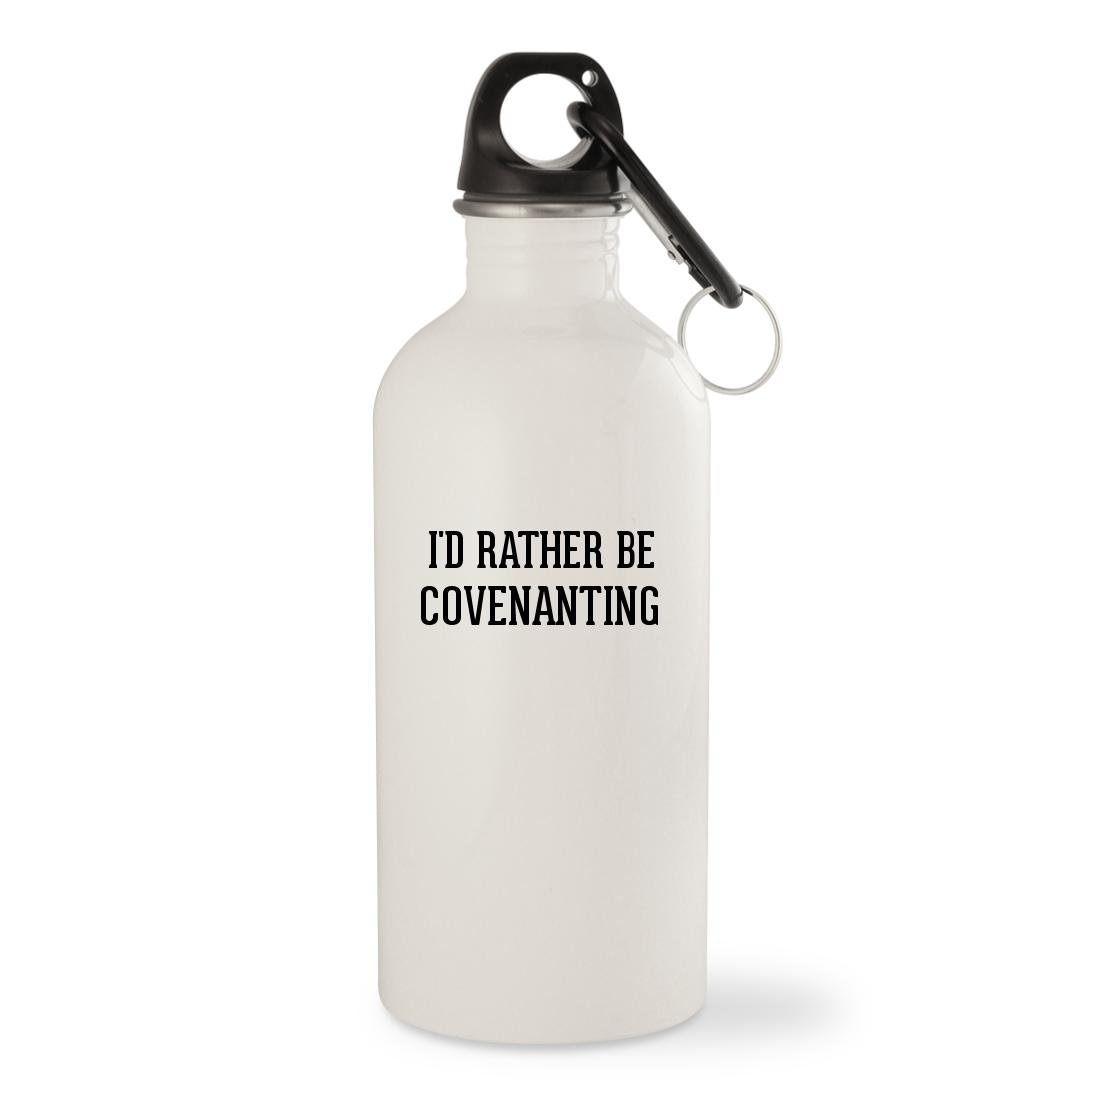 I'd Rather Be COVENANTING - White 20oz Stainless Steel Water Bottle with Carabiner